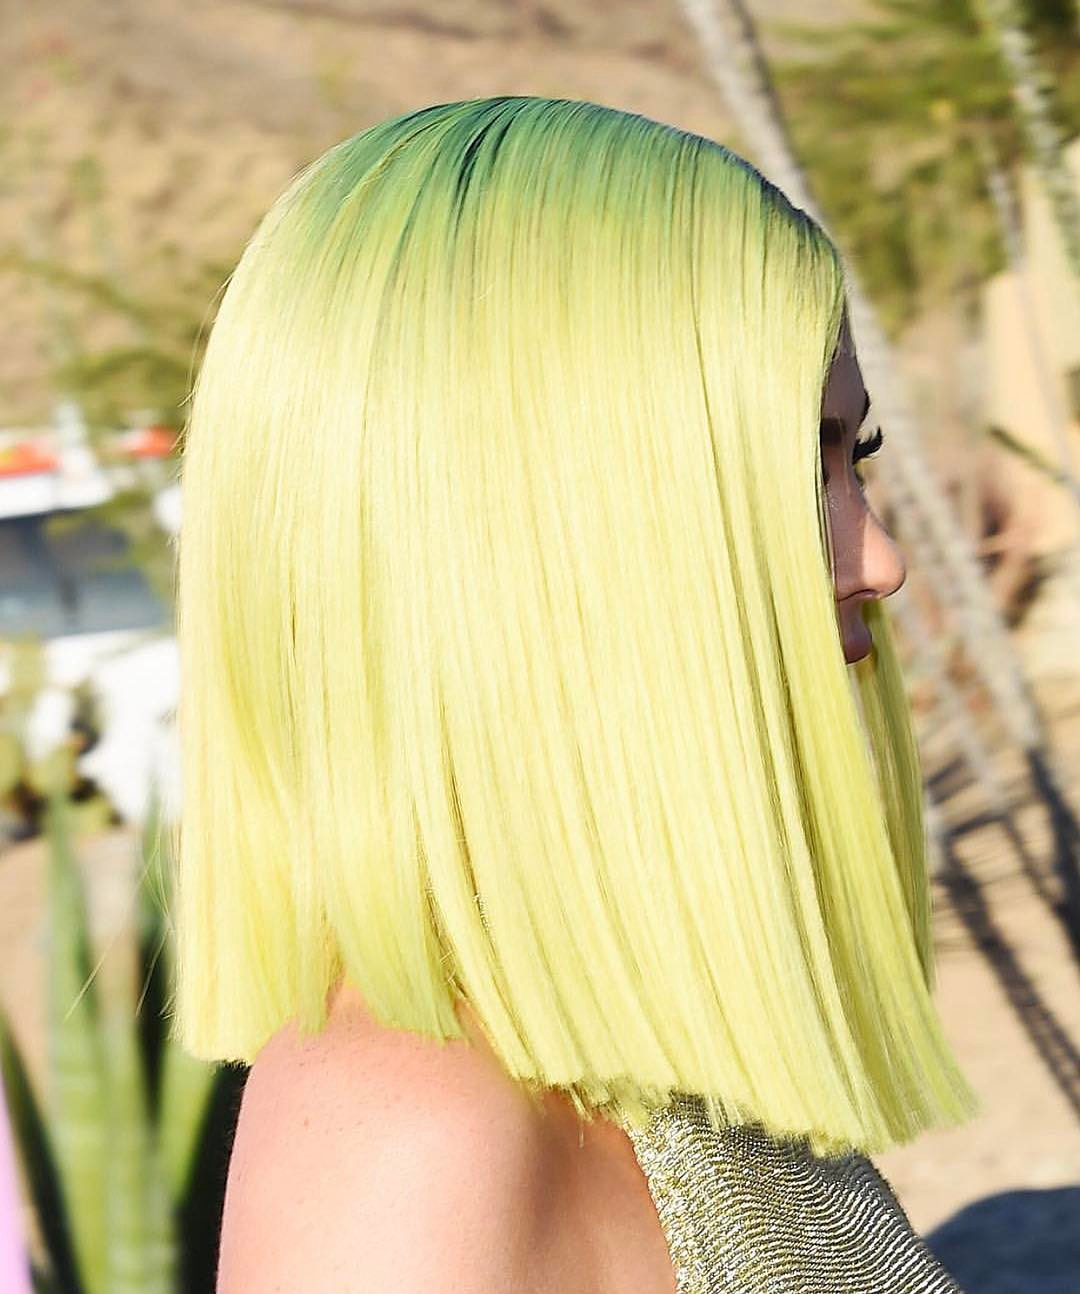 kylie jenner's neon hair colour